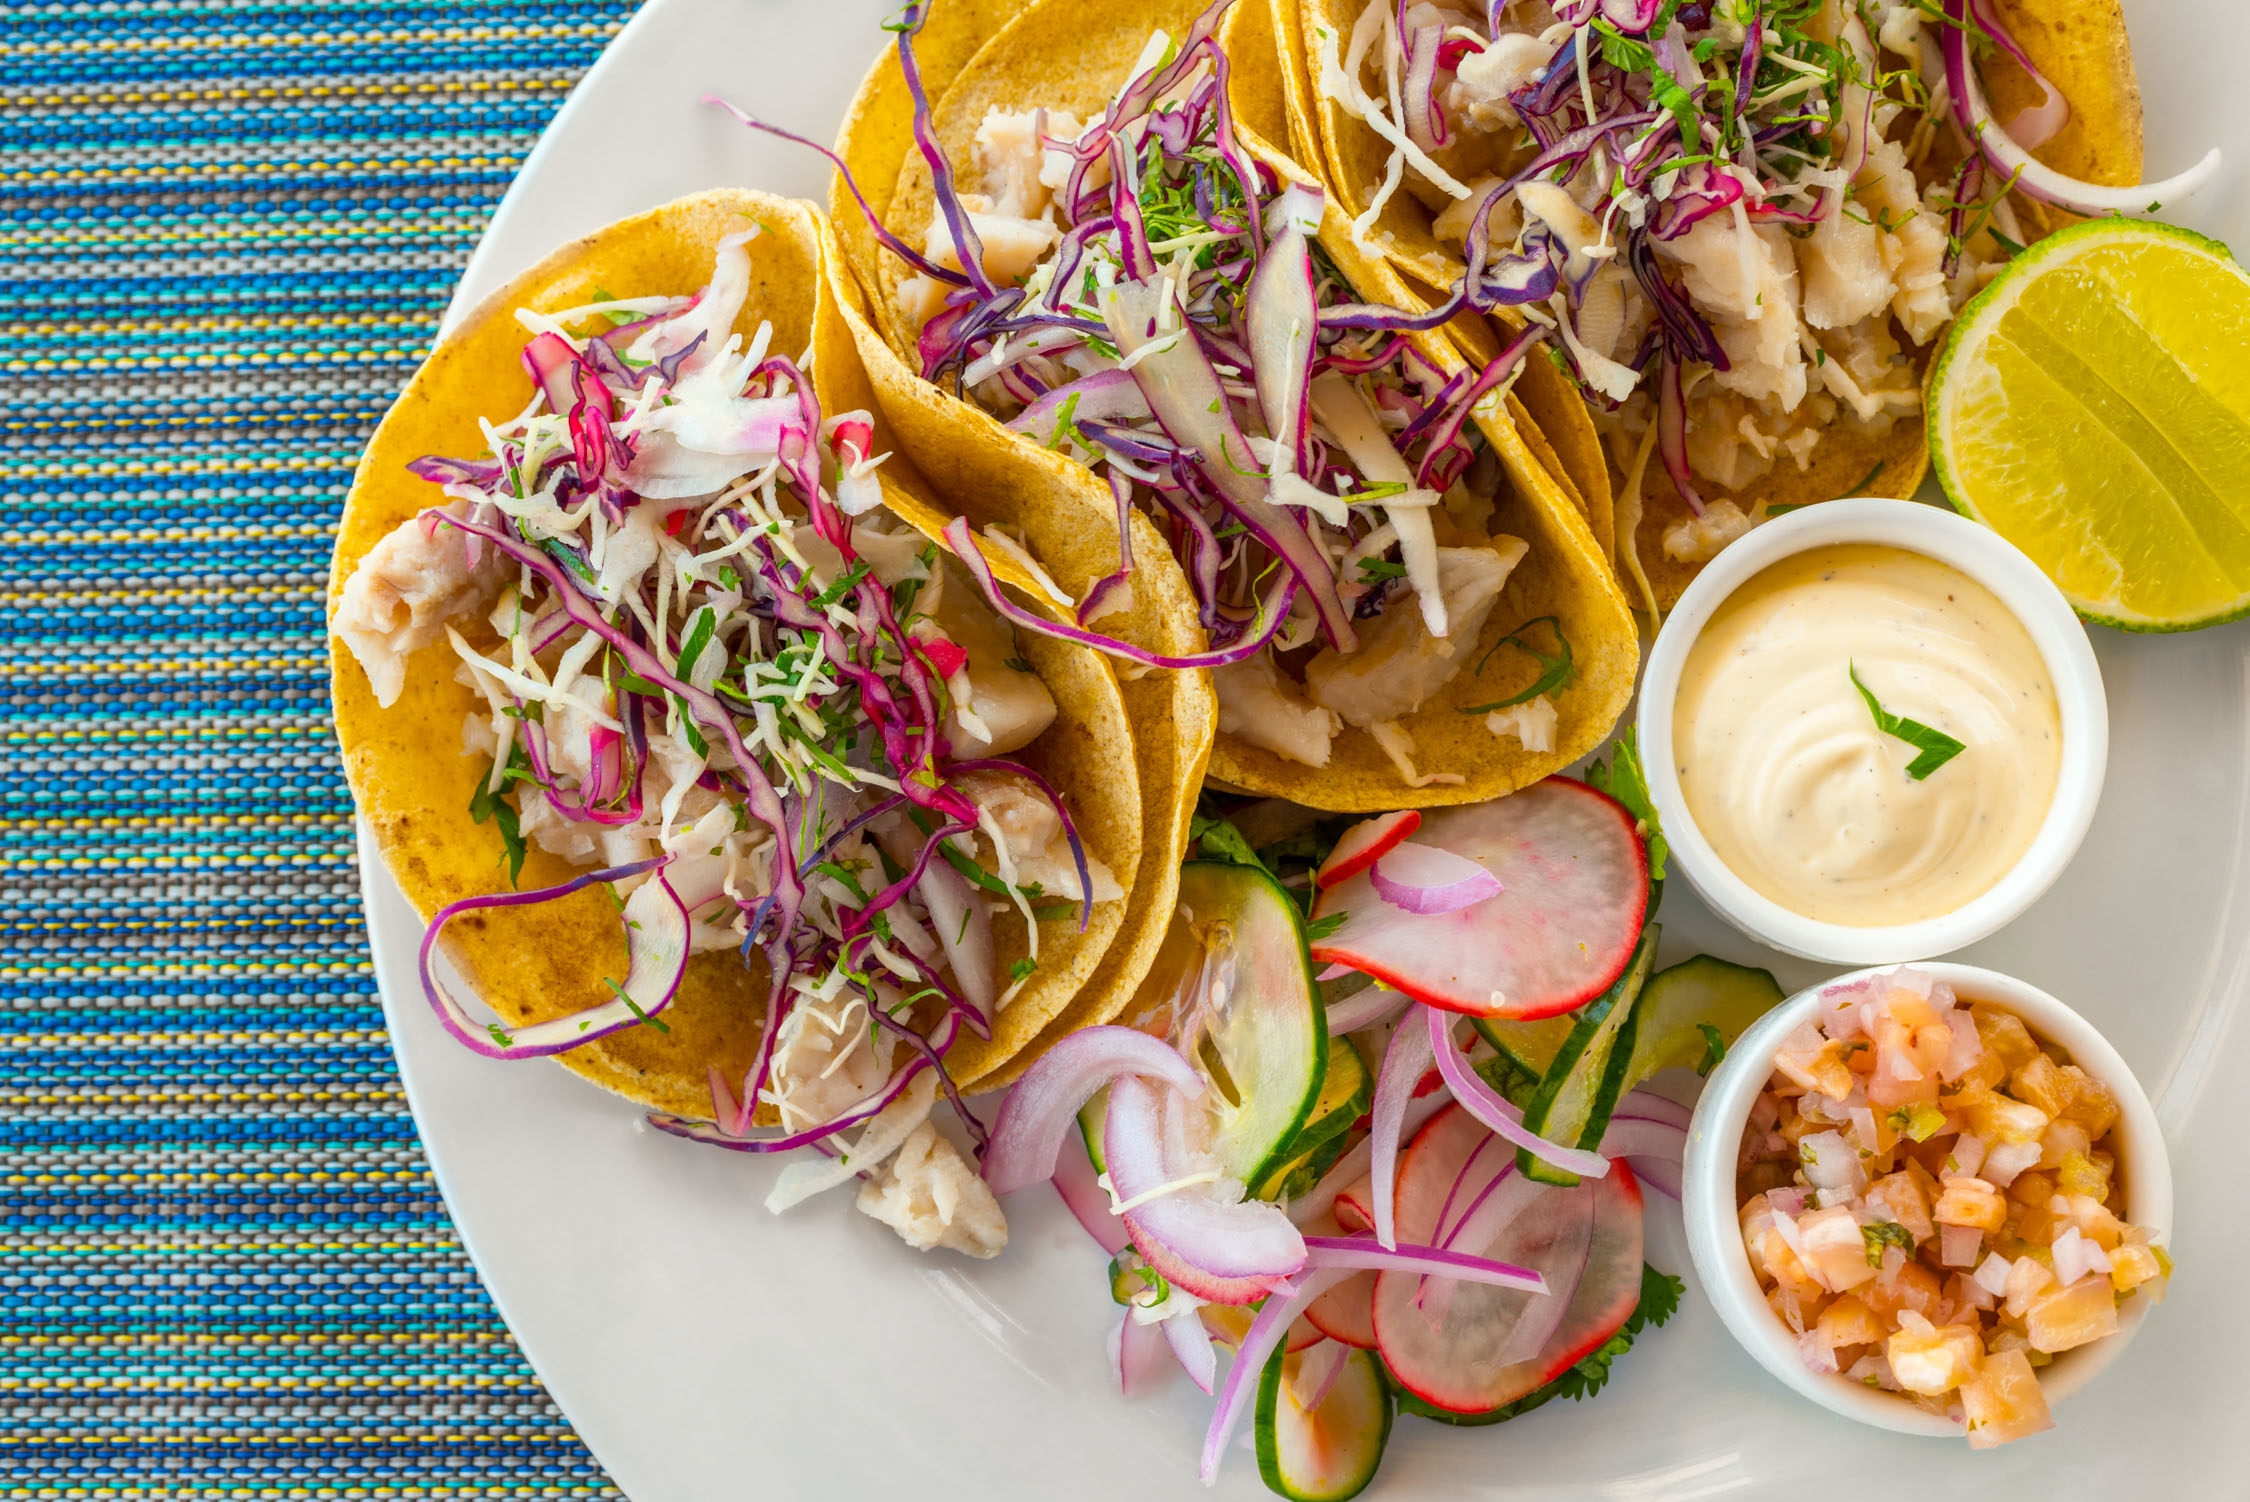 Always fresh and delicious! Fish tacos, seemed to be our lunch staple :)